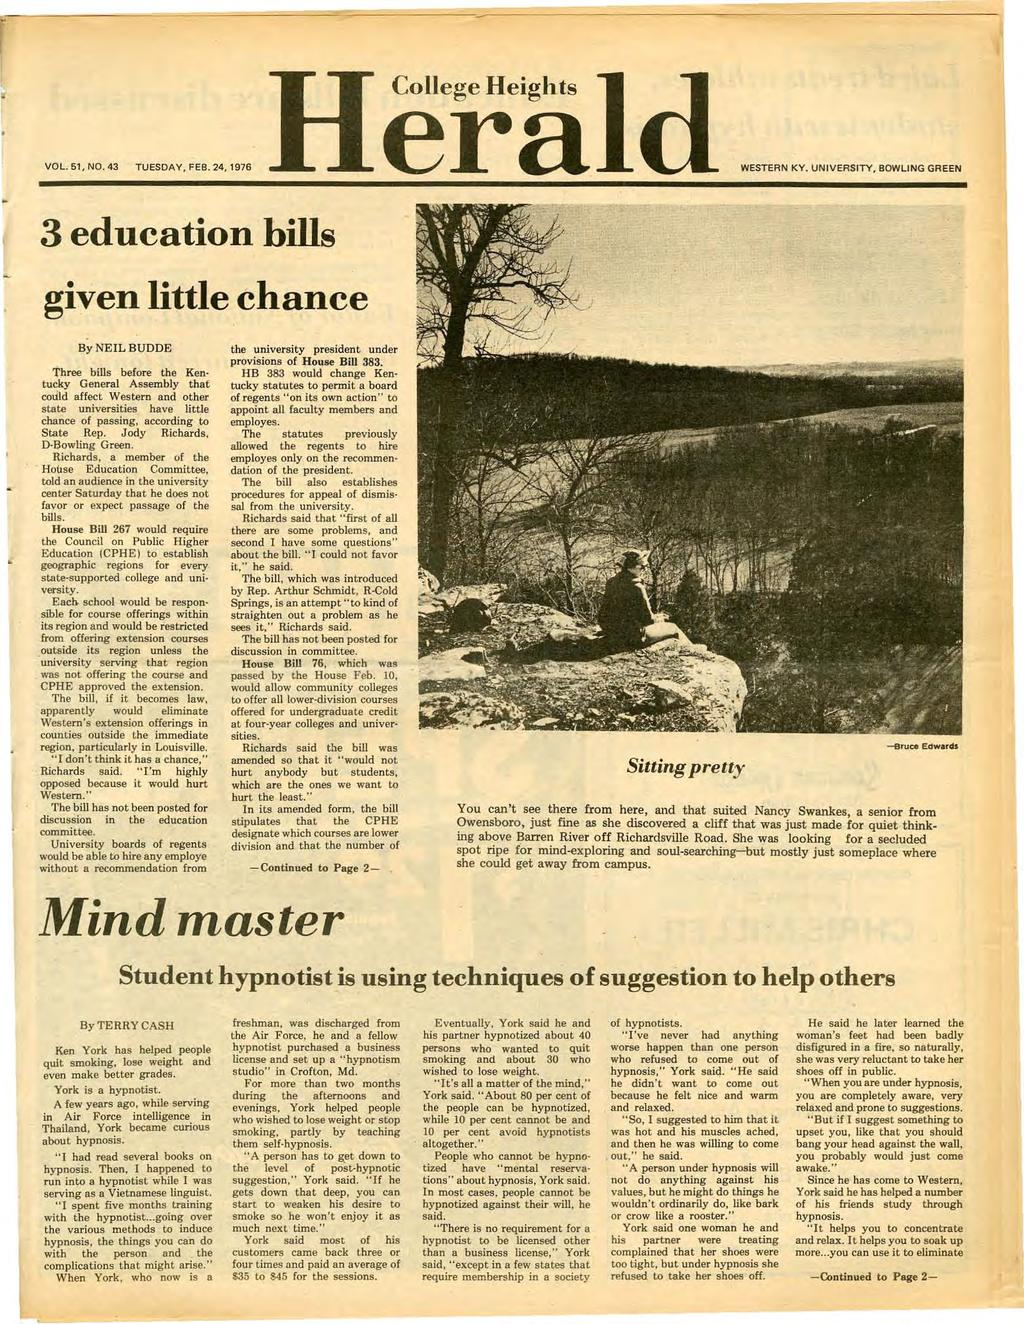 VOL. 51, NO. 43 TUESDAY, FEB. 24, 1976 era 3 education hills given little chance College Heights WESTERN KY.